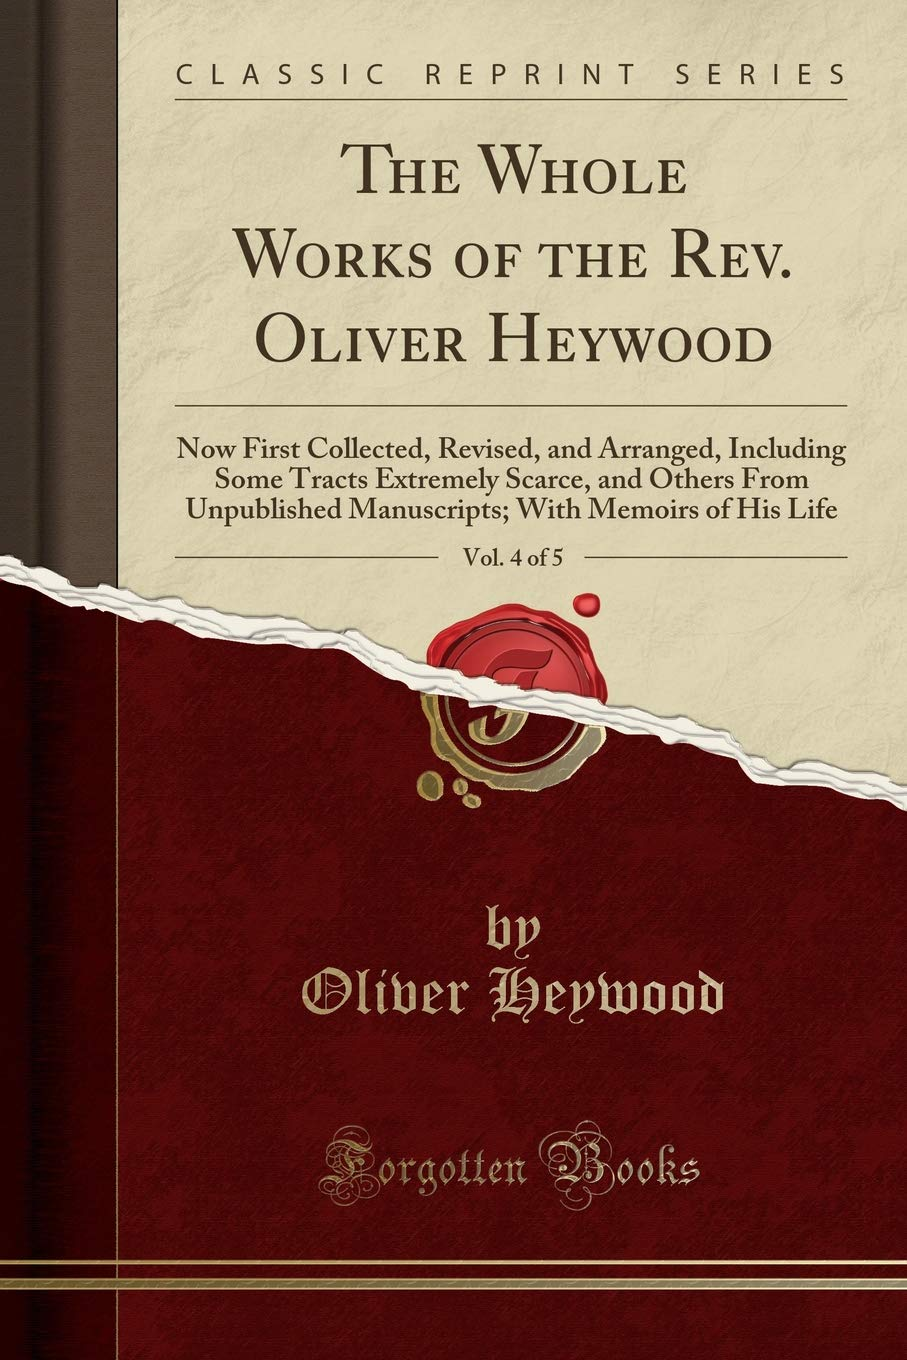 Download The Whole Works of the Rev. Oliver Heywood, Vol. 4 of 5: Now First Collected, Revised, and Arranged, Including Some Tracts Extremely Scarce, and ... With Memoirs of His Life (Classic Reprint) pdf epub